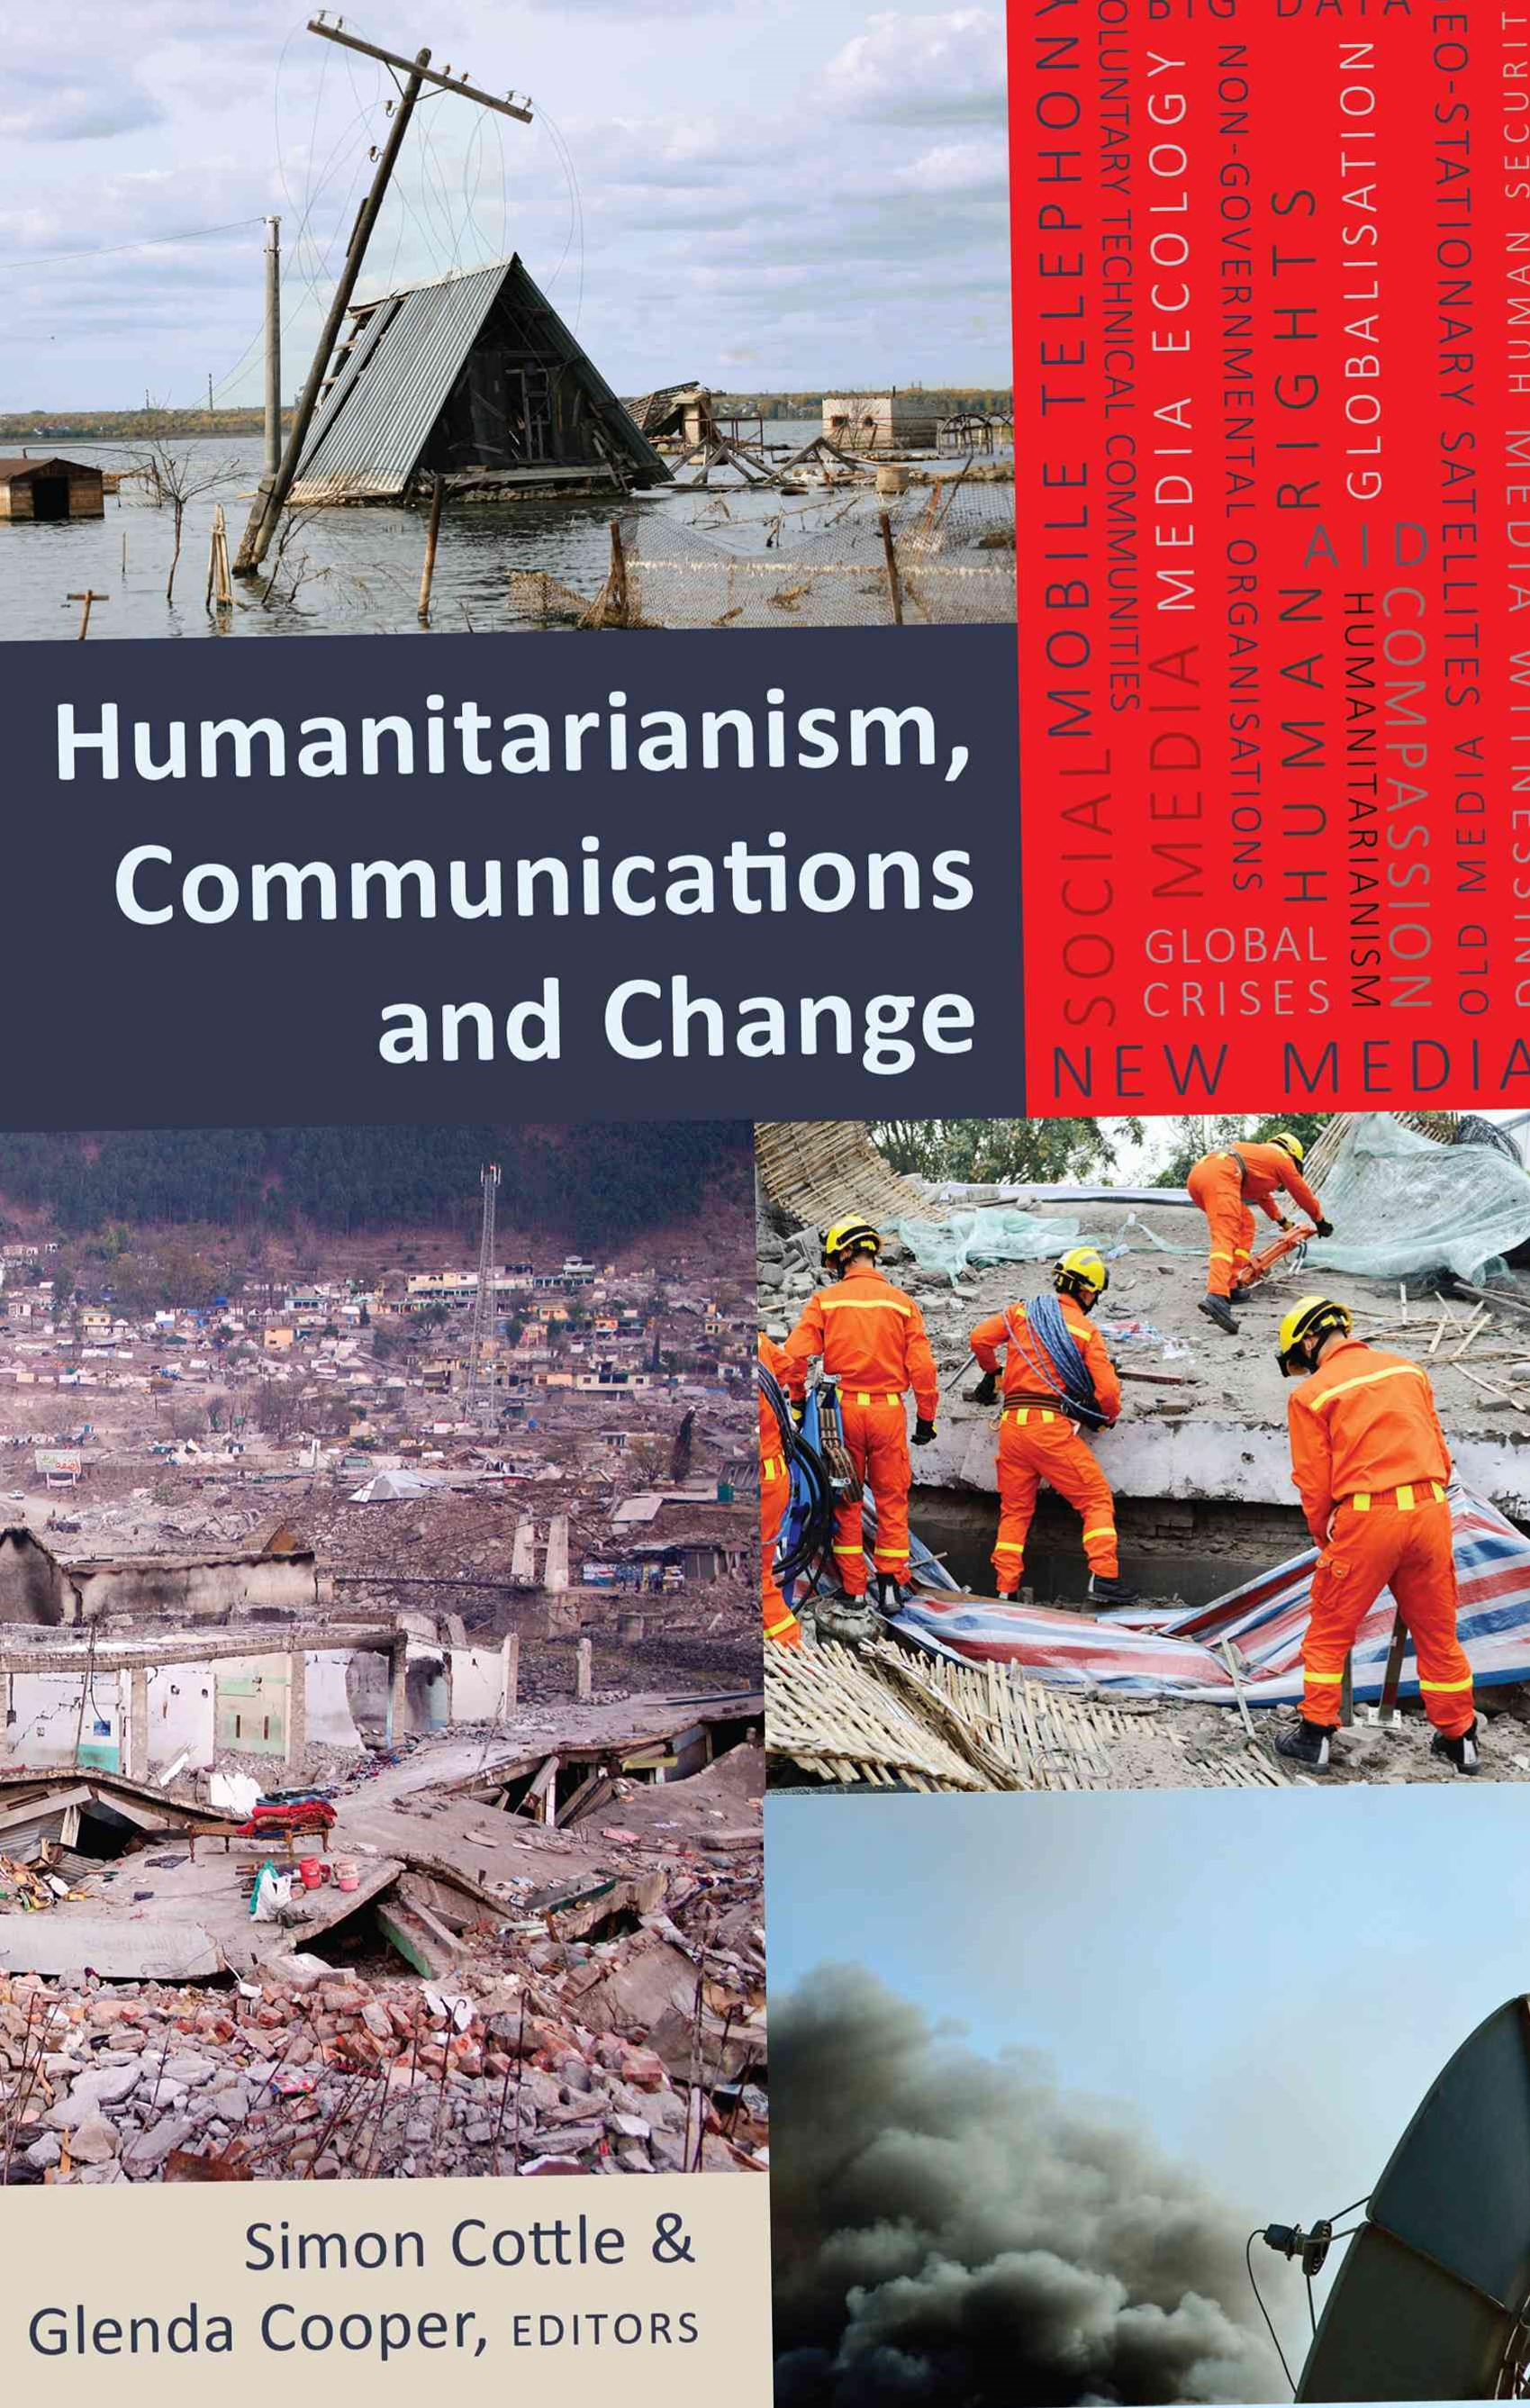 Humanitarianism, Communications and Change